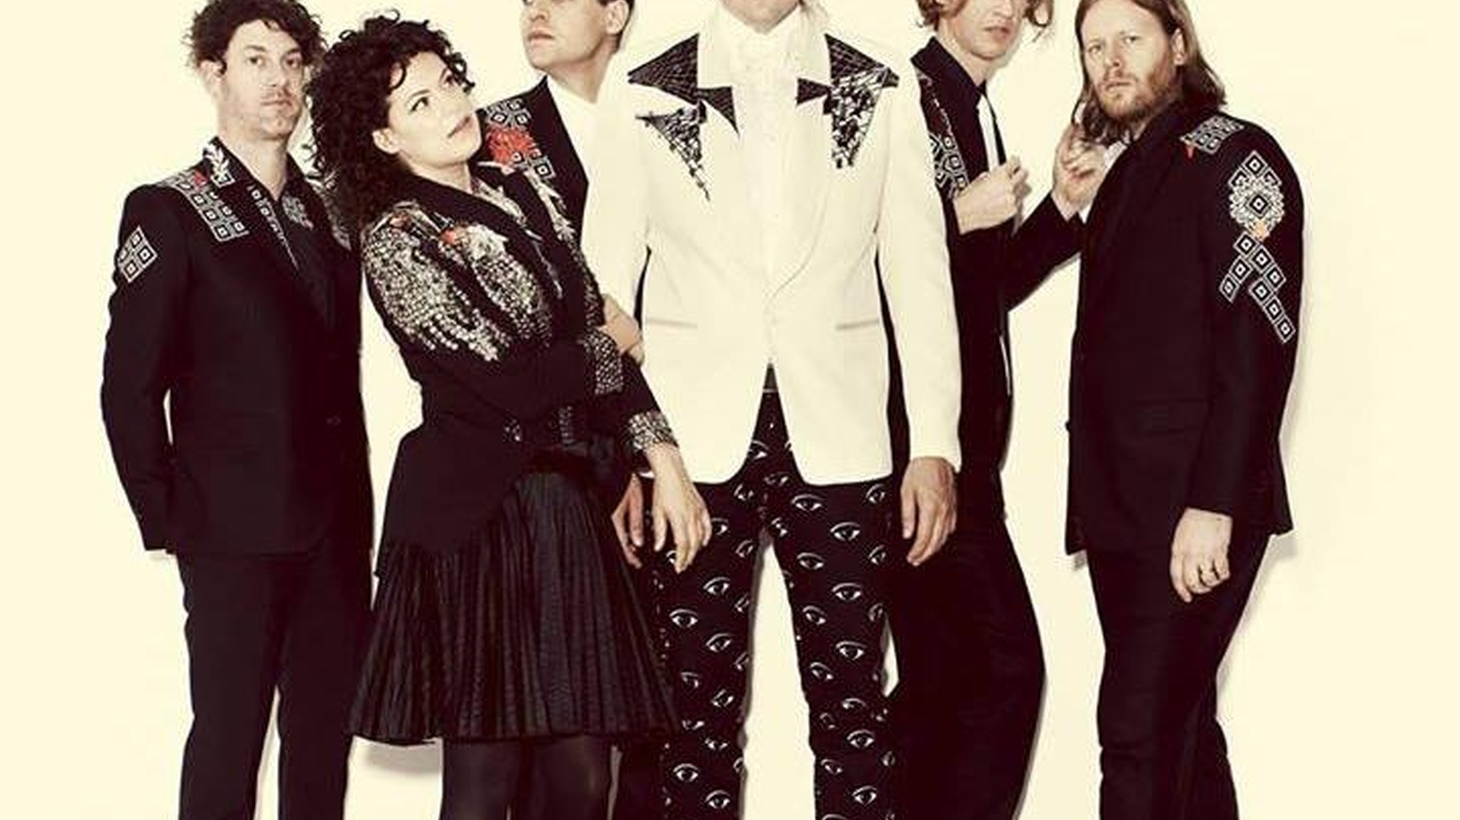 """Arcade Fire performs the band's new album, """"Reflektor,"""" live from Capitol Studios in Los Angeles on Monday, October 28 at 7pm, one day before its official release."""